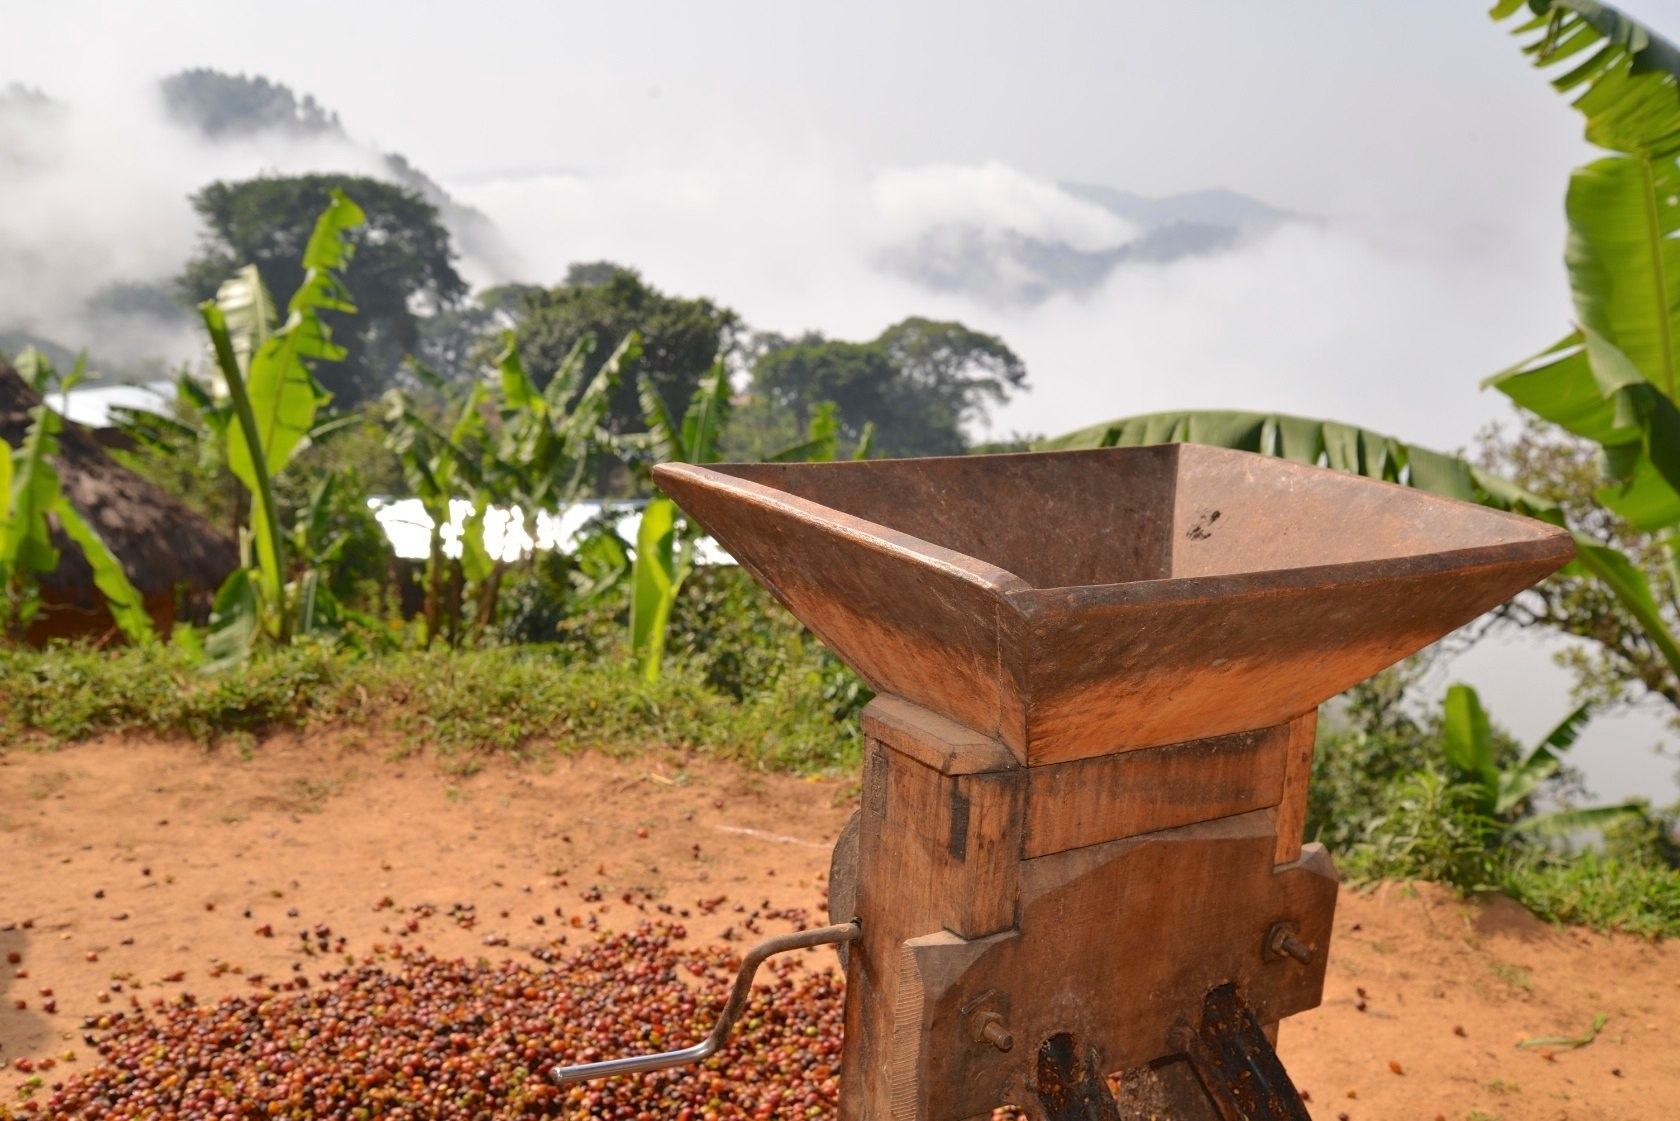 Coffee pulper in the Democratic Republic of Congo